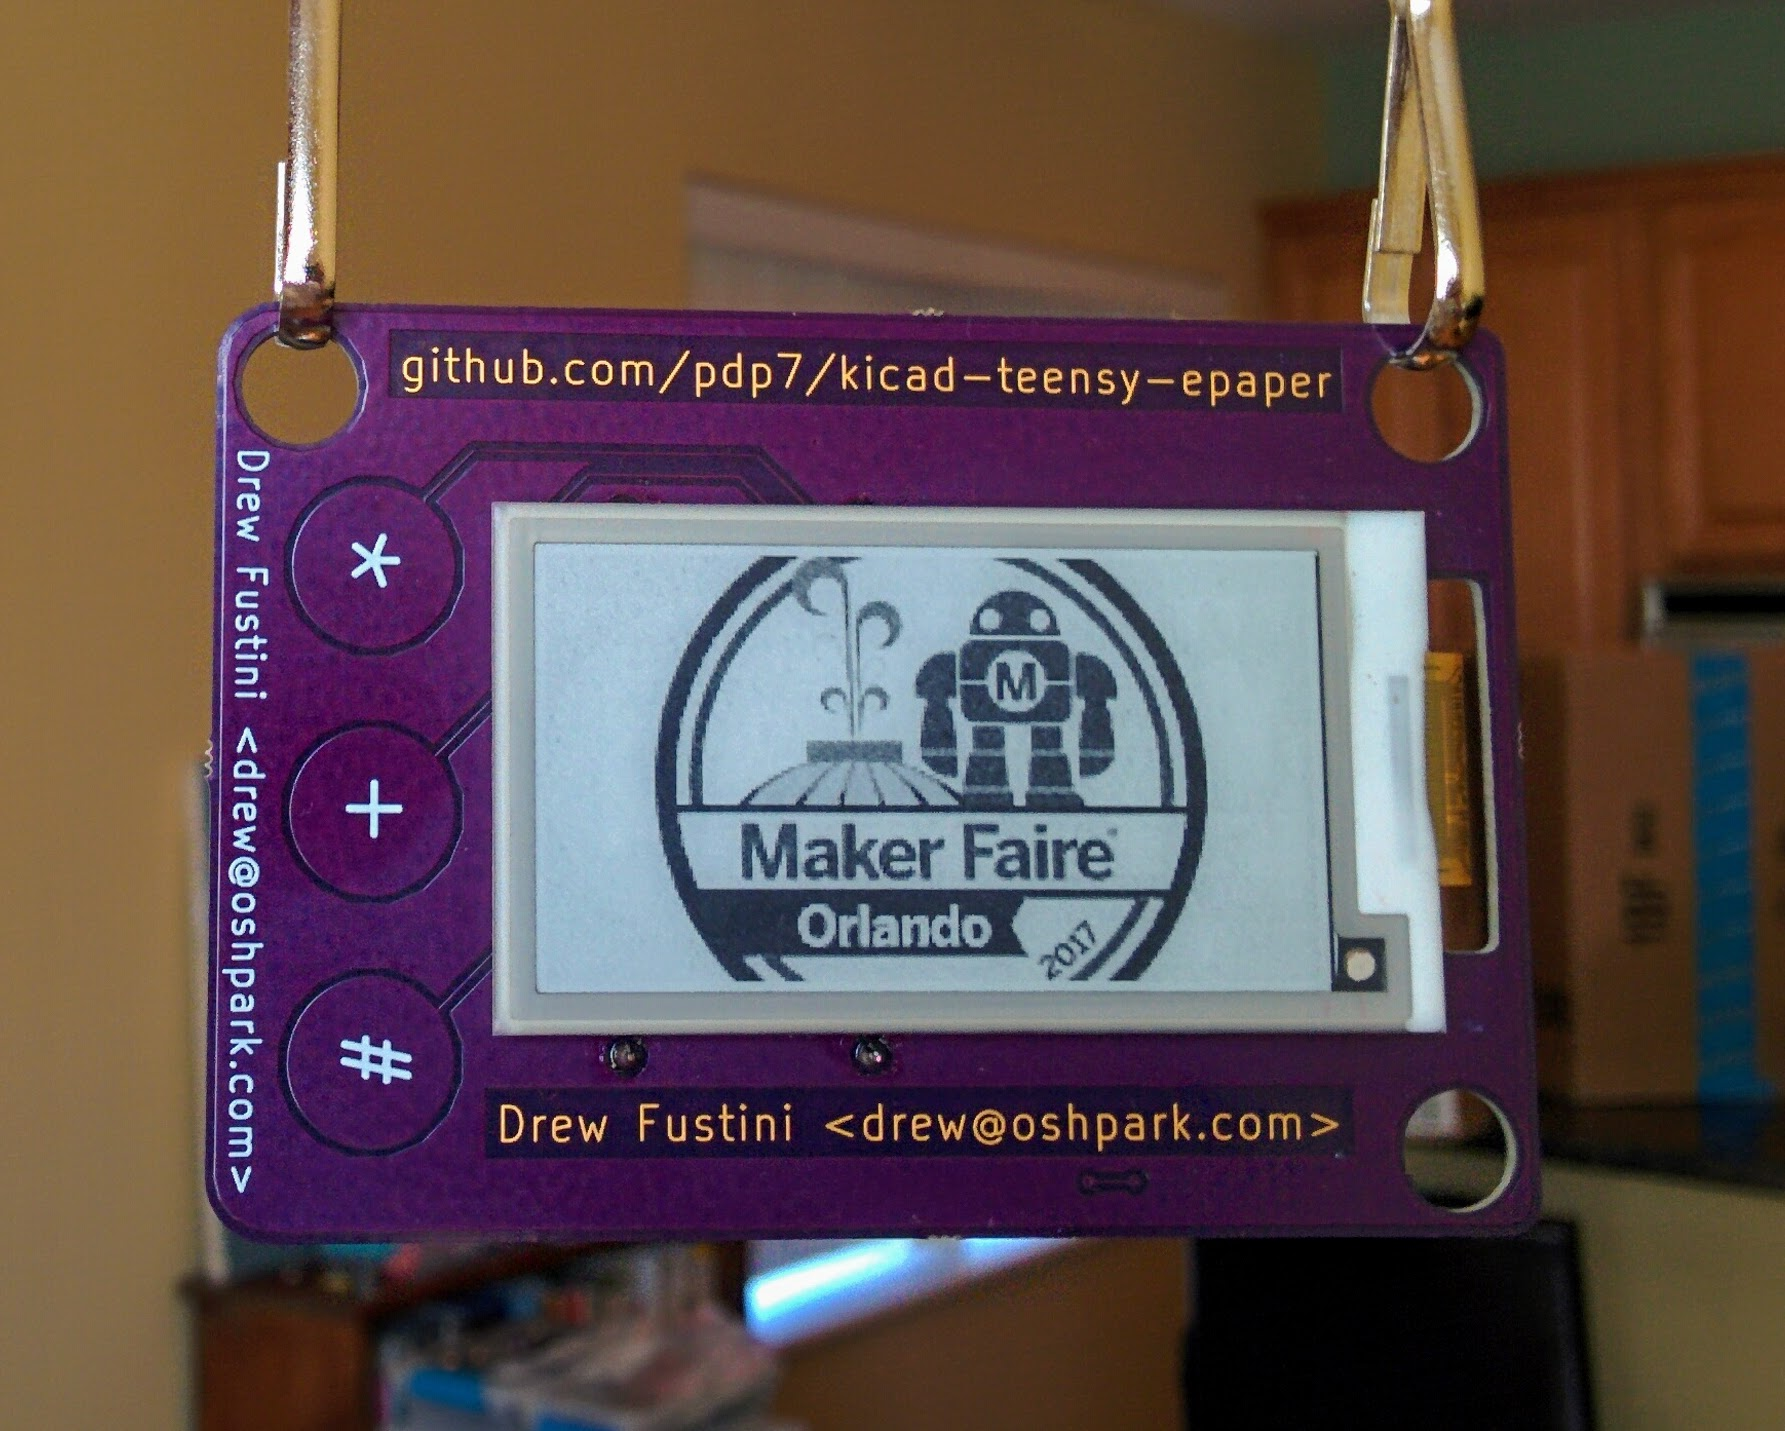 Maker Faire Orlando this weekend